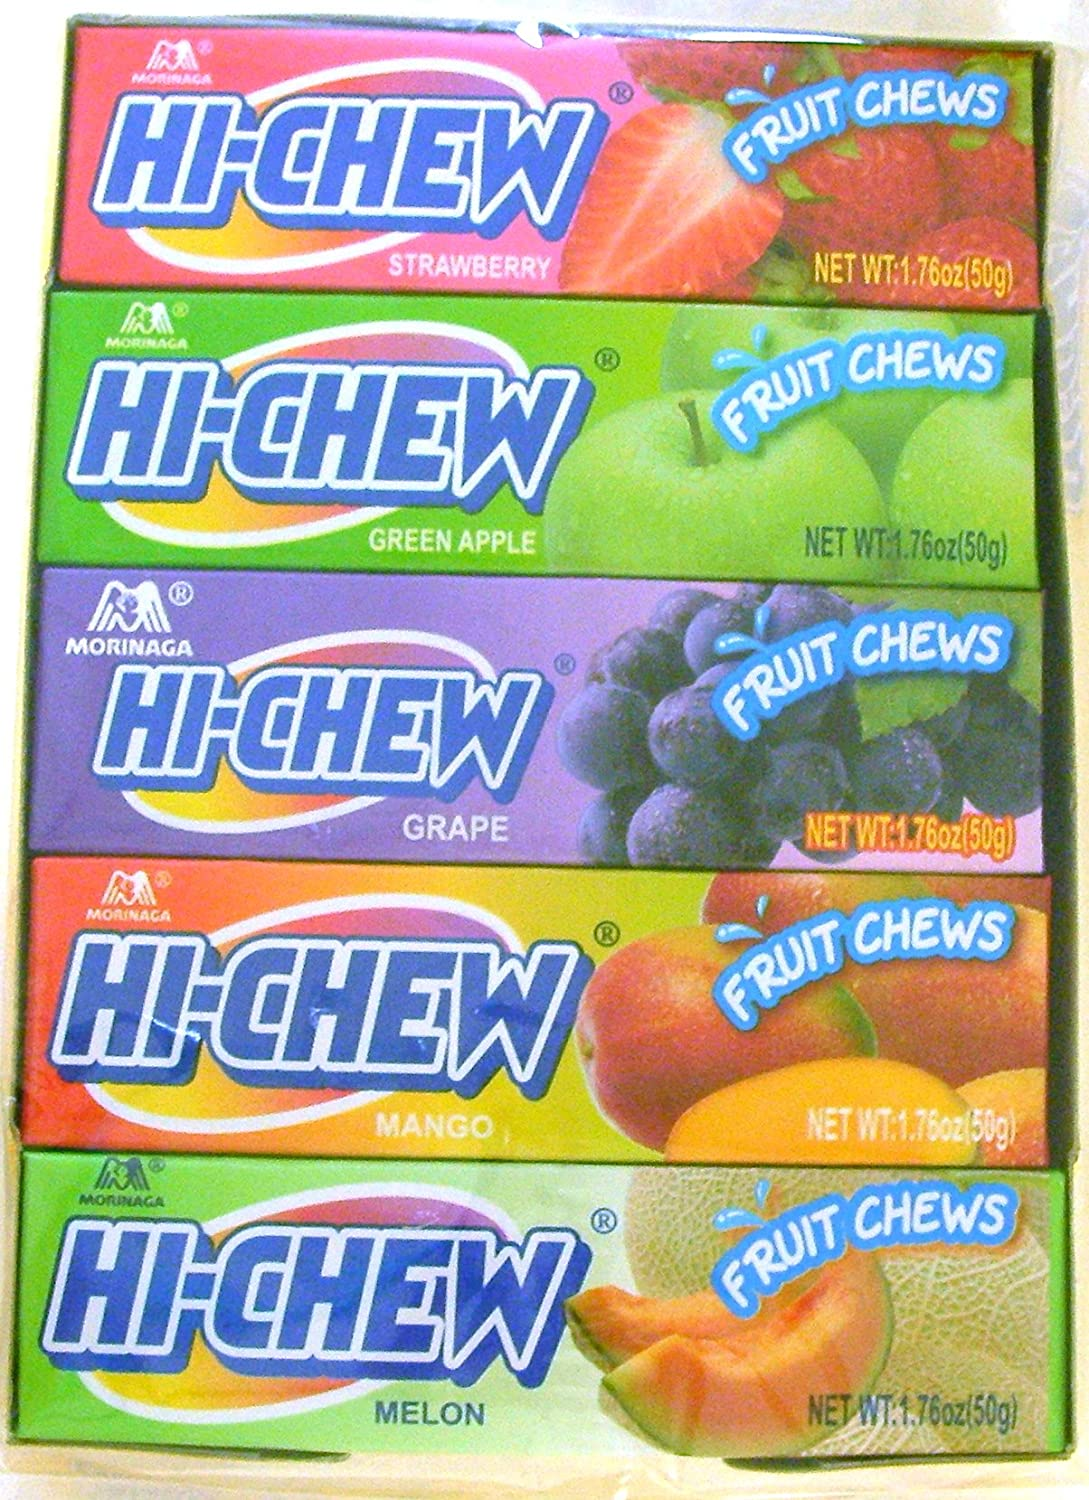 Hi-chew Assorted Fruit Flavors (10 packs) Strawberry, Green Apple, Grape, Mango